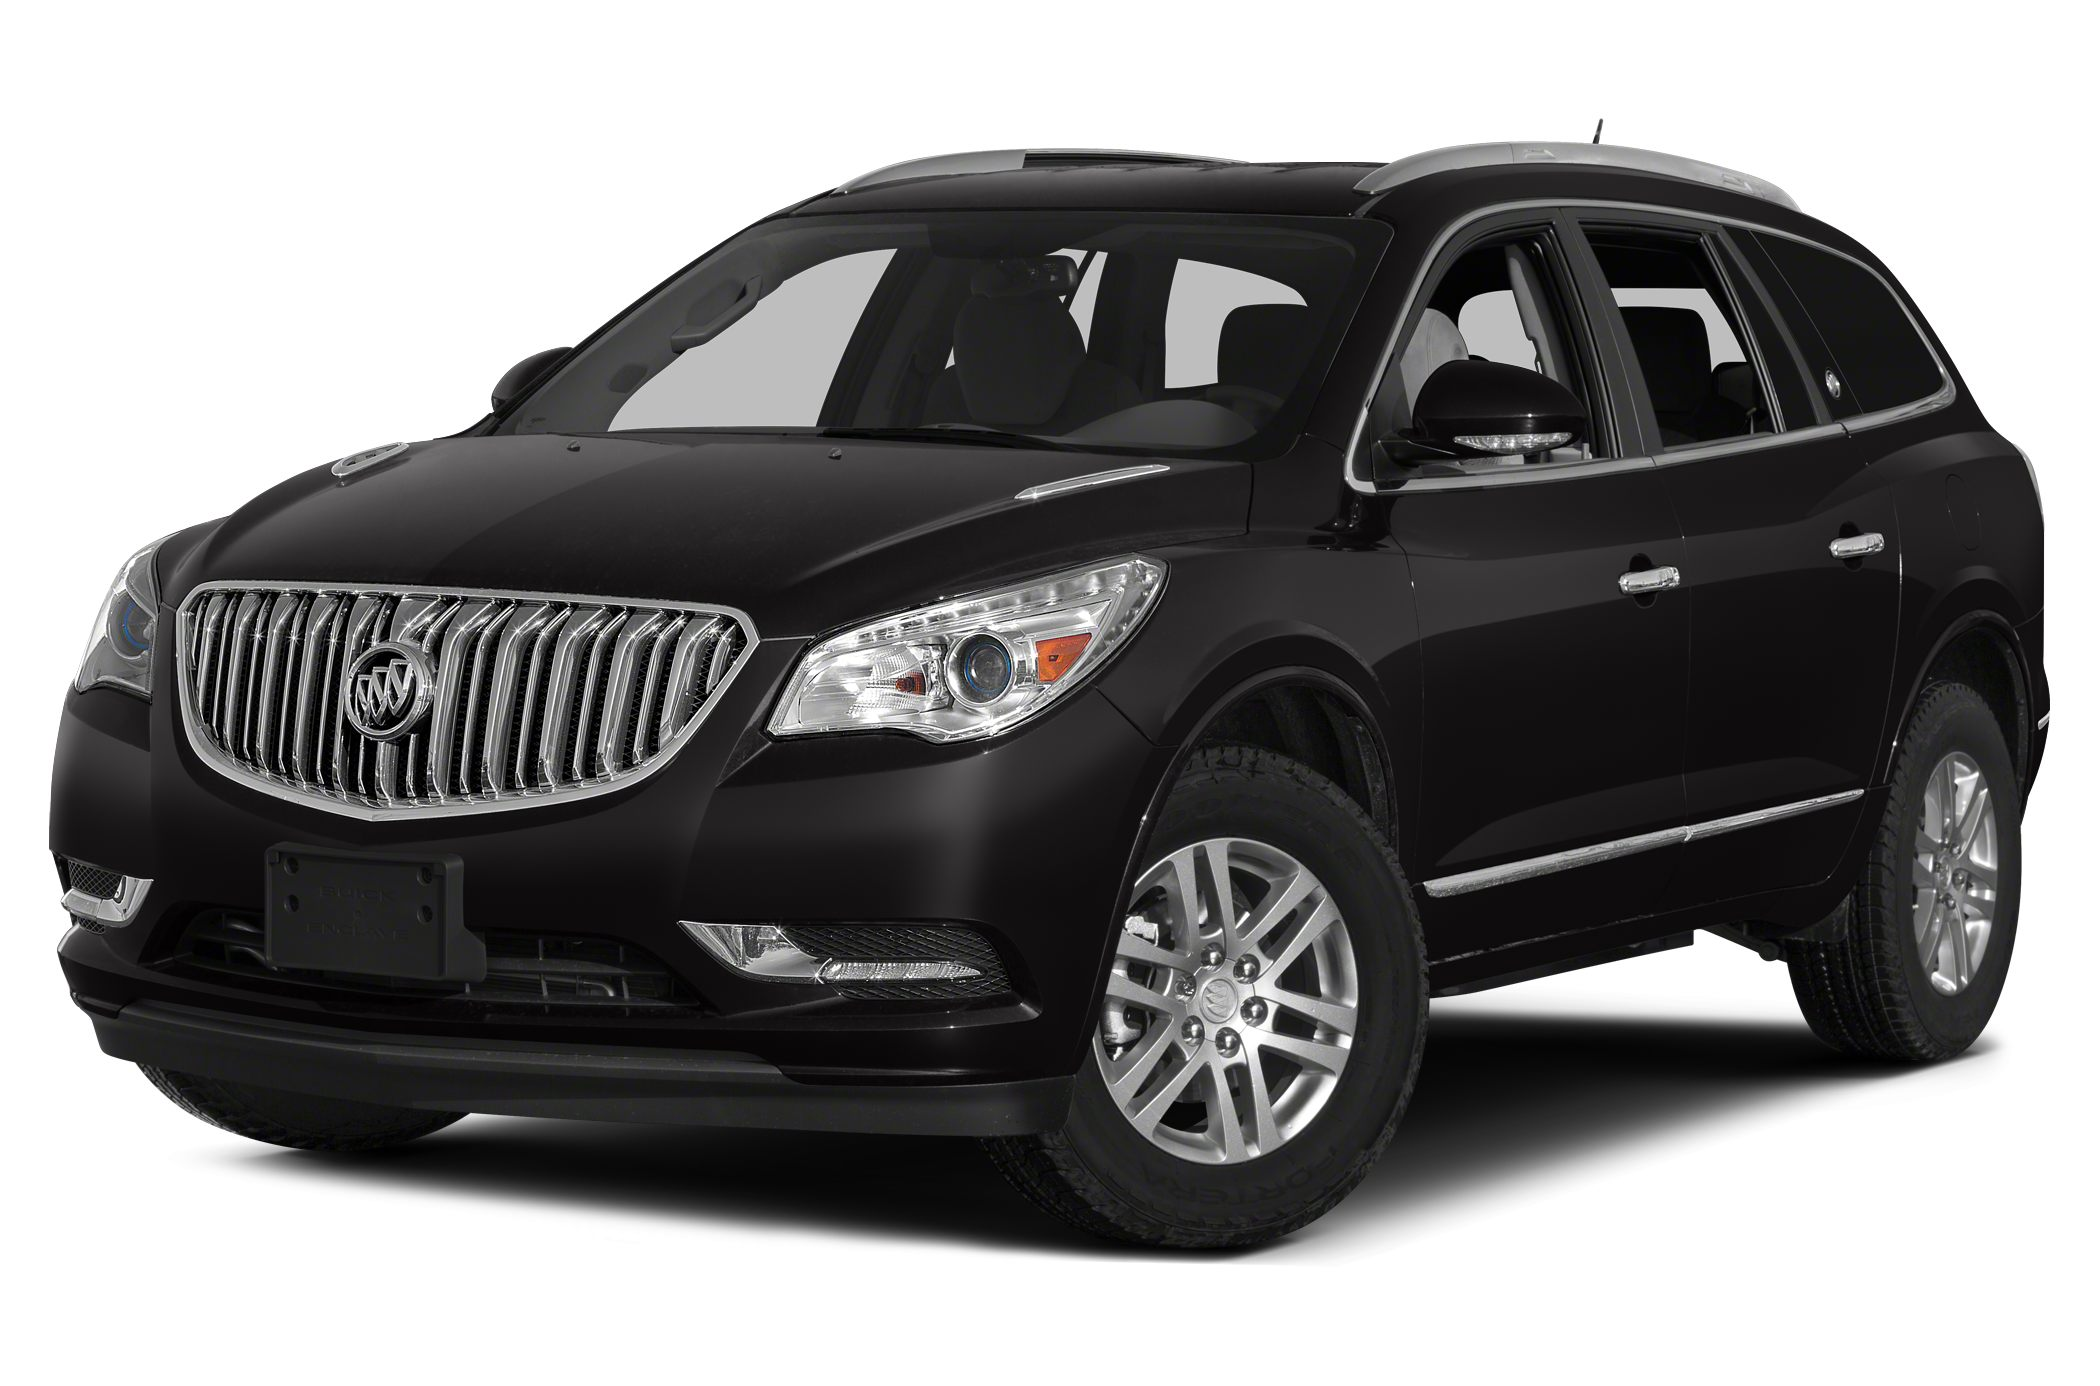 2015 Buick Enclave Leather SUV for sale in Neosho for $45,365 with 0 miles